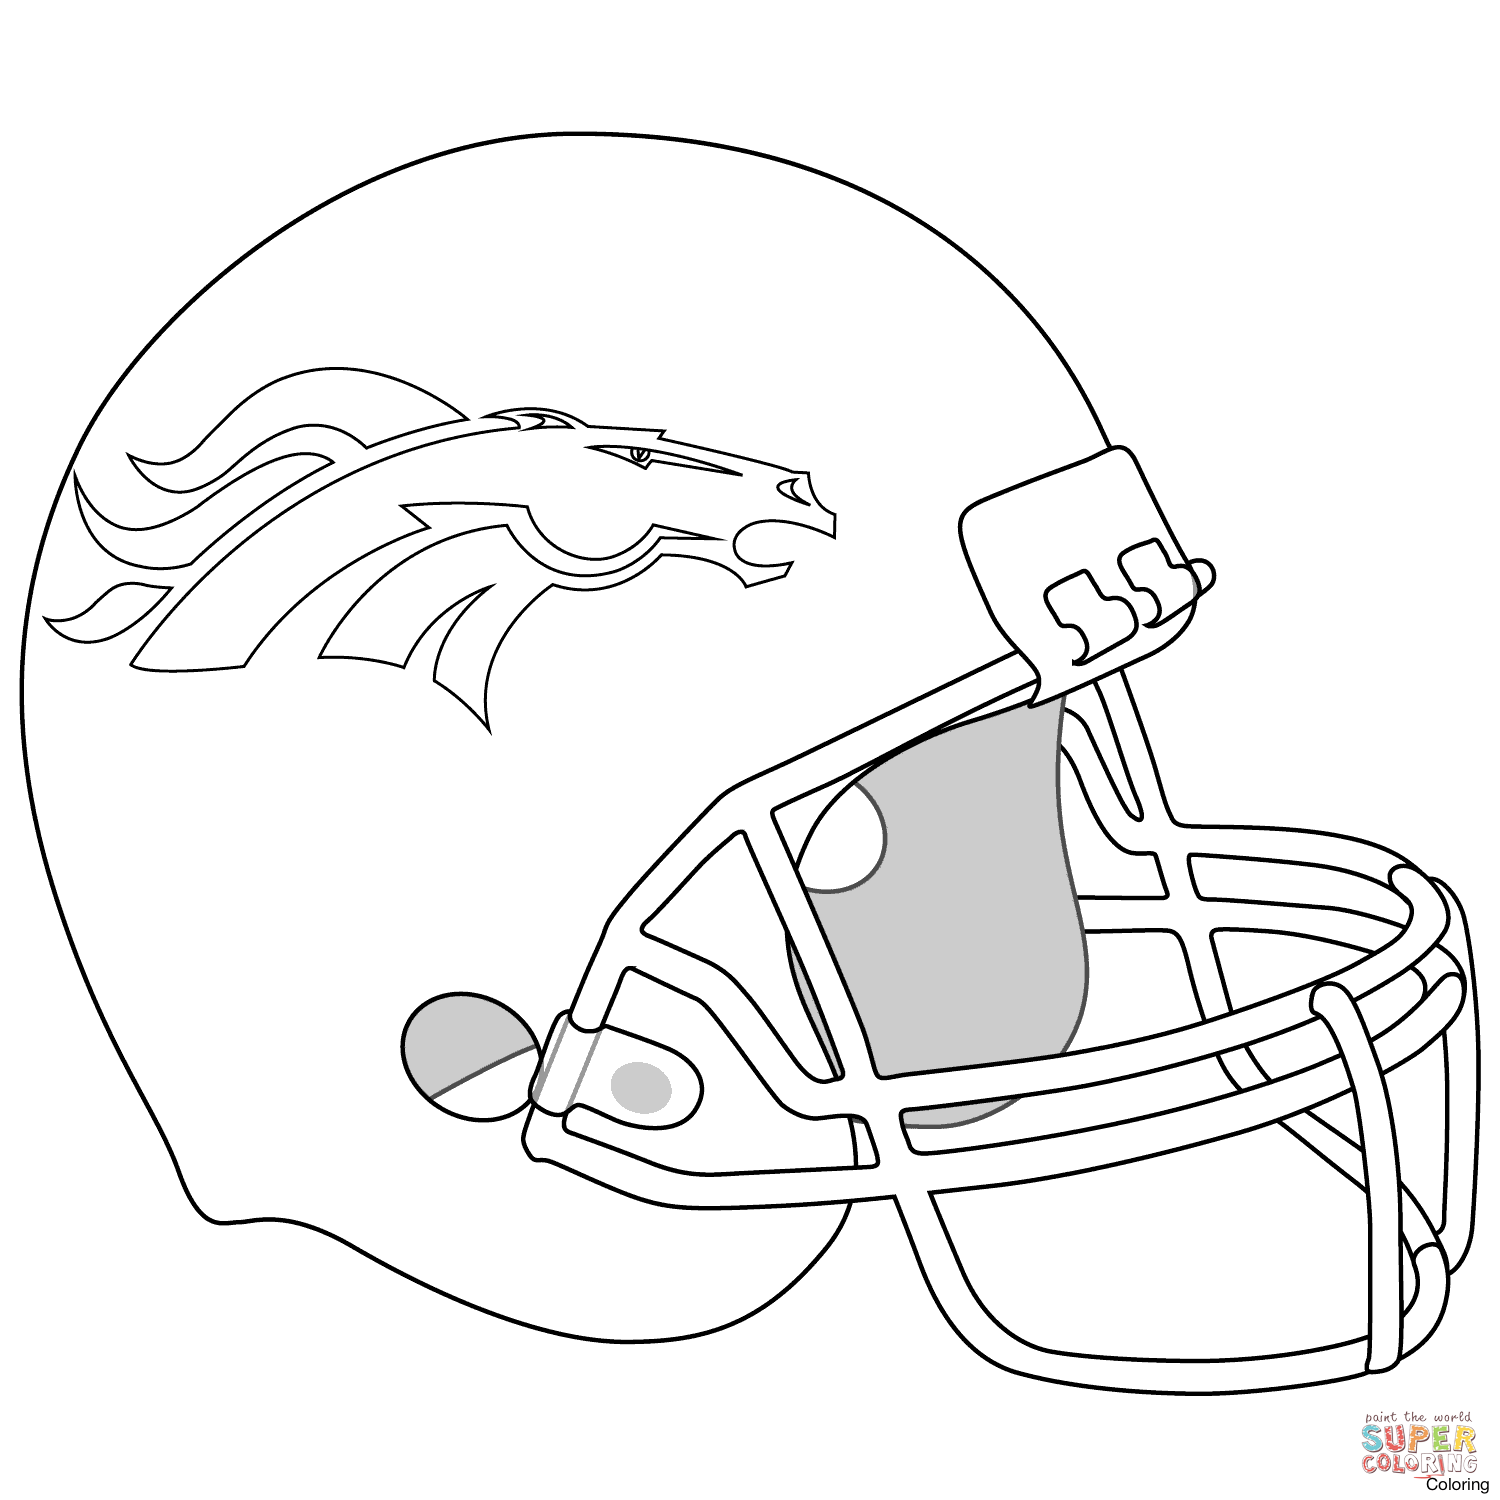 1500x1500 Denver Broncos Helmet Coloring Page Nfl Logos Pages 5f Pictures